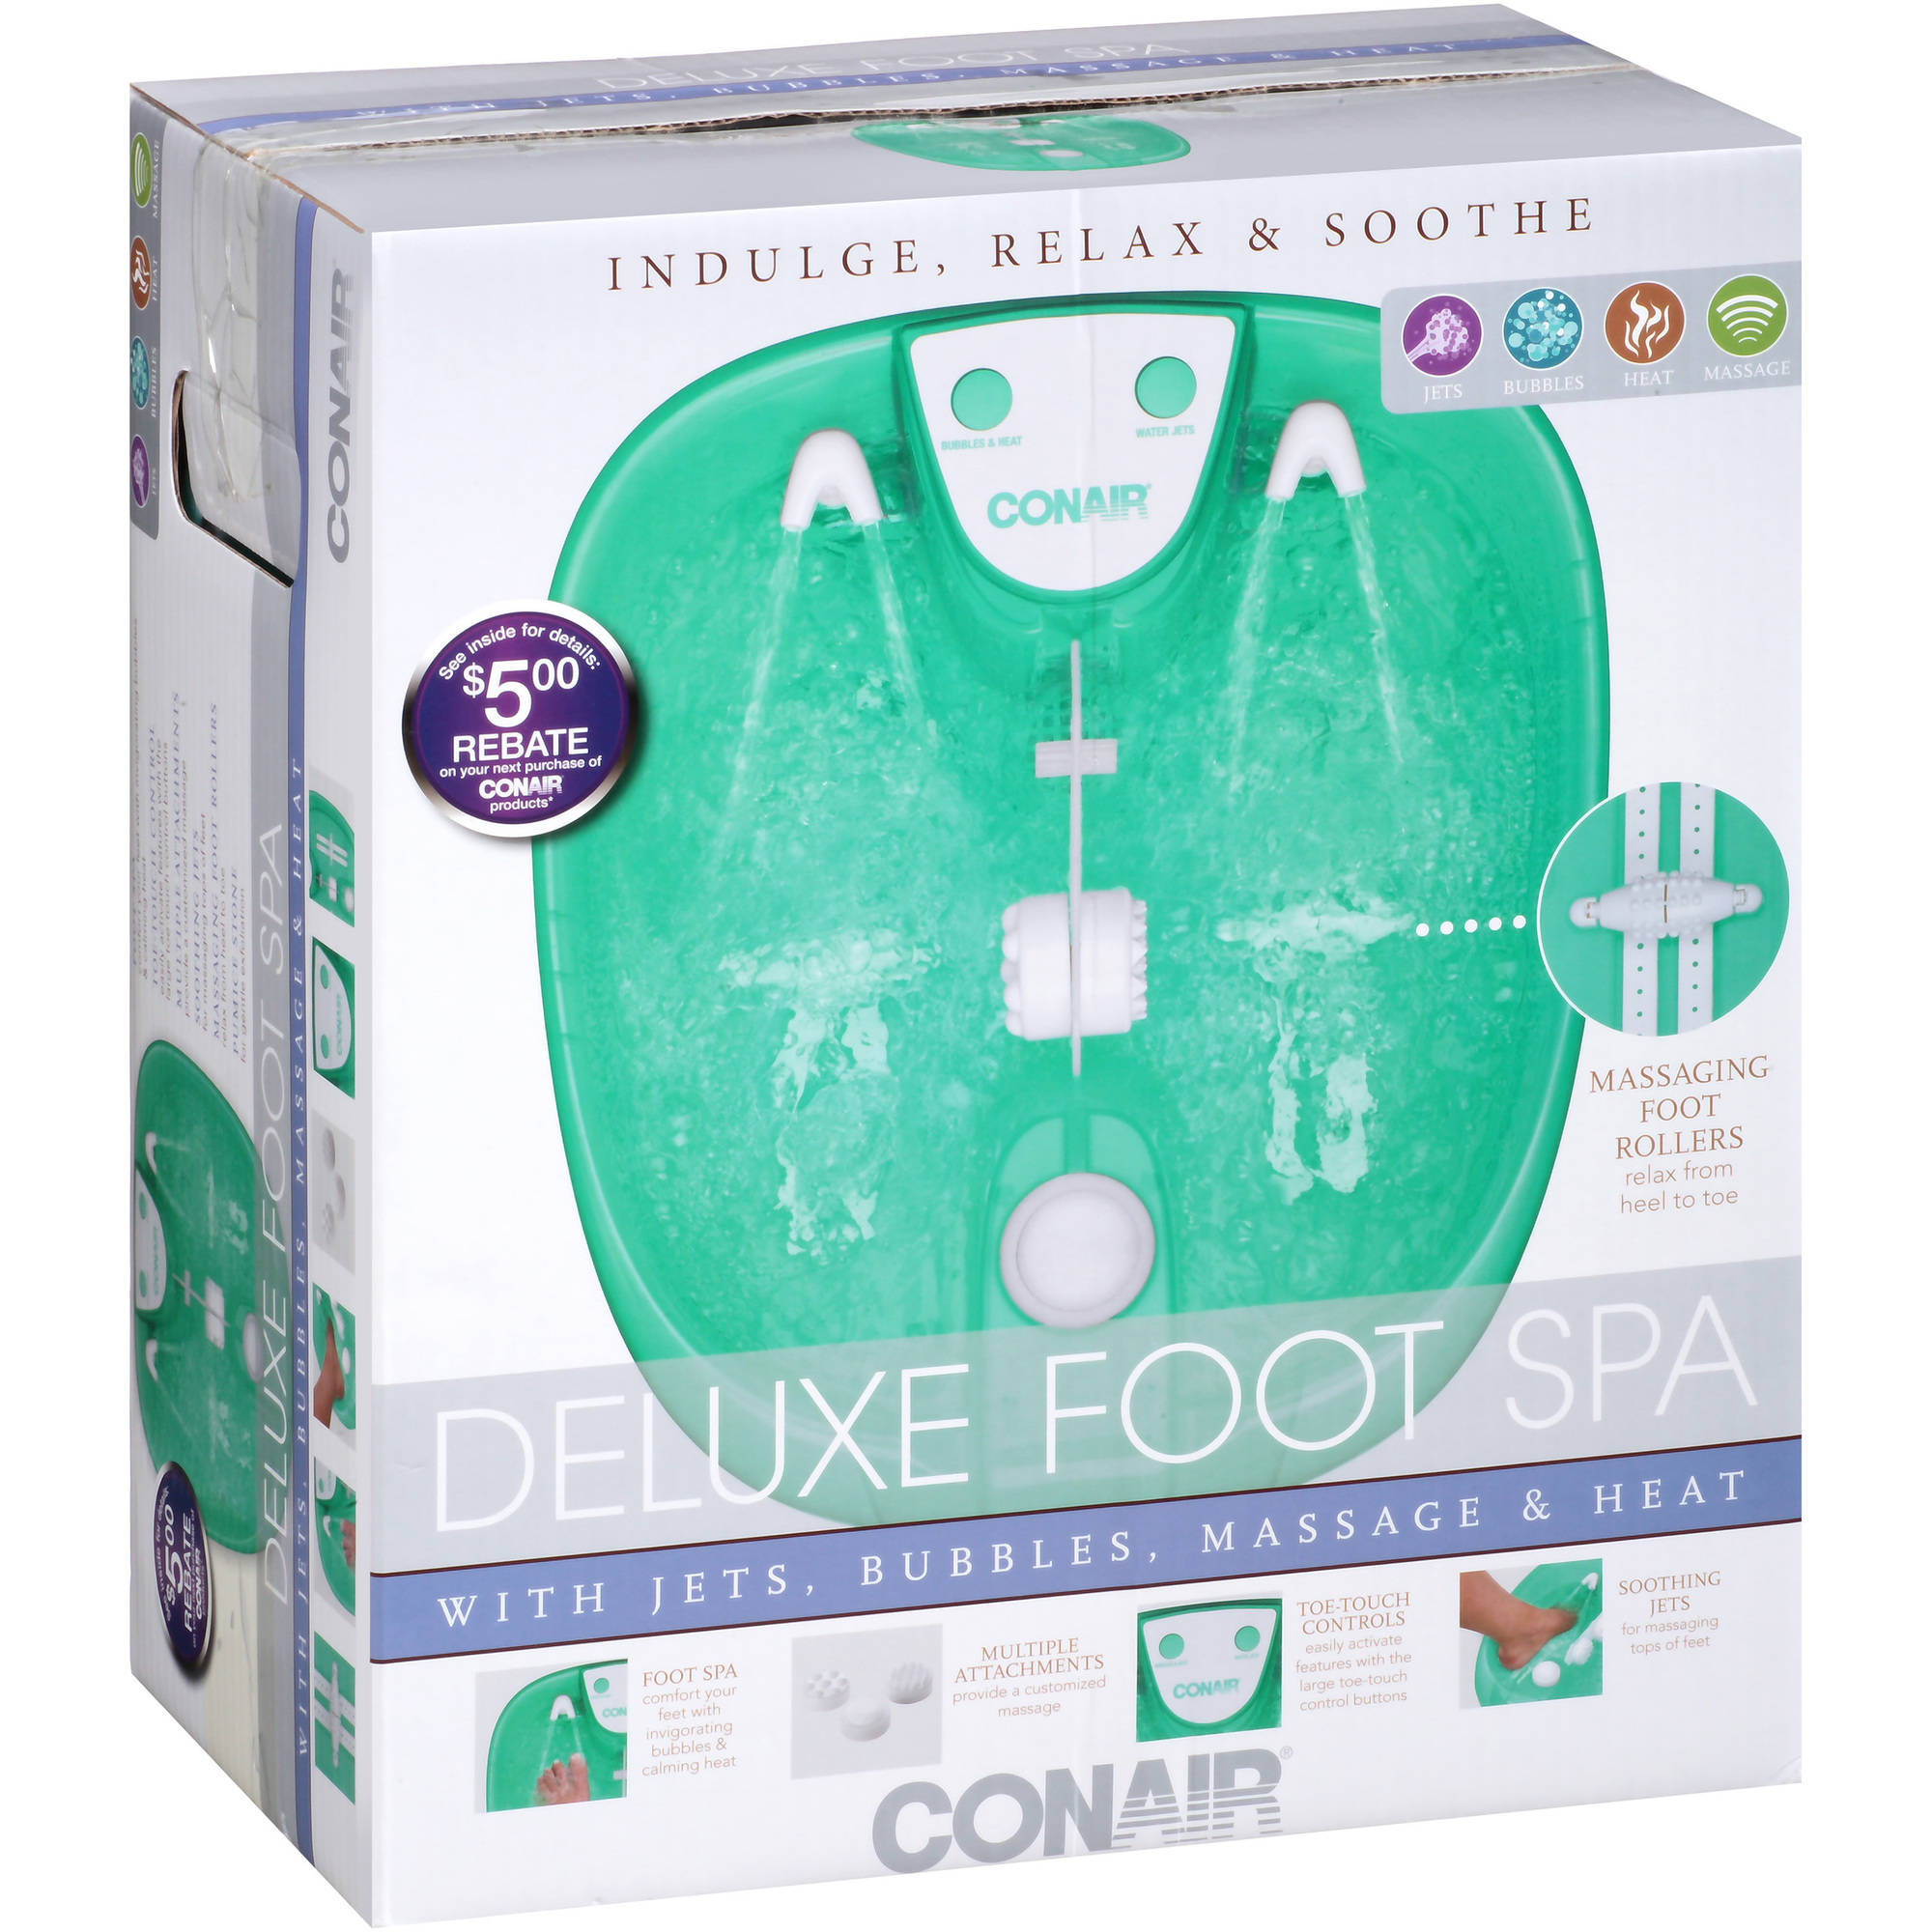 Conair Deluxe Foot Spa, Green - Walmart.com